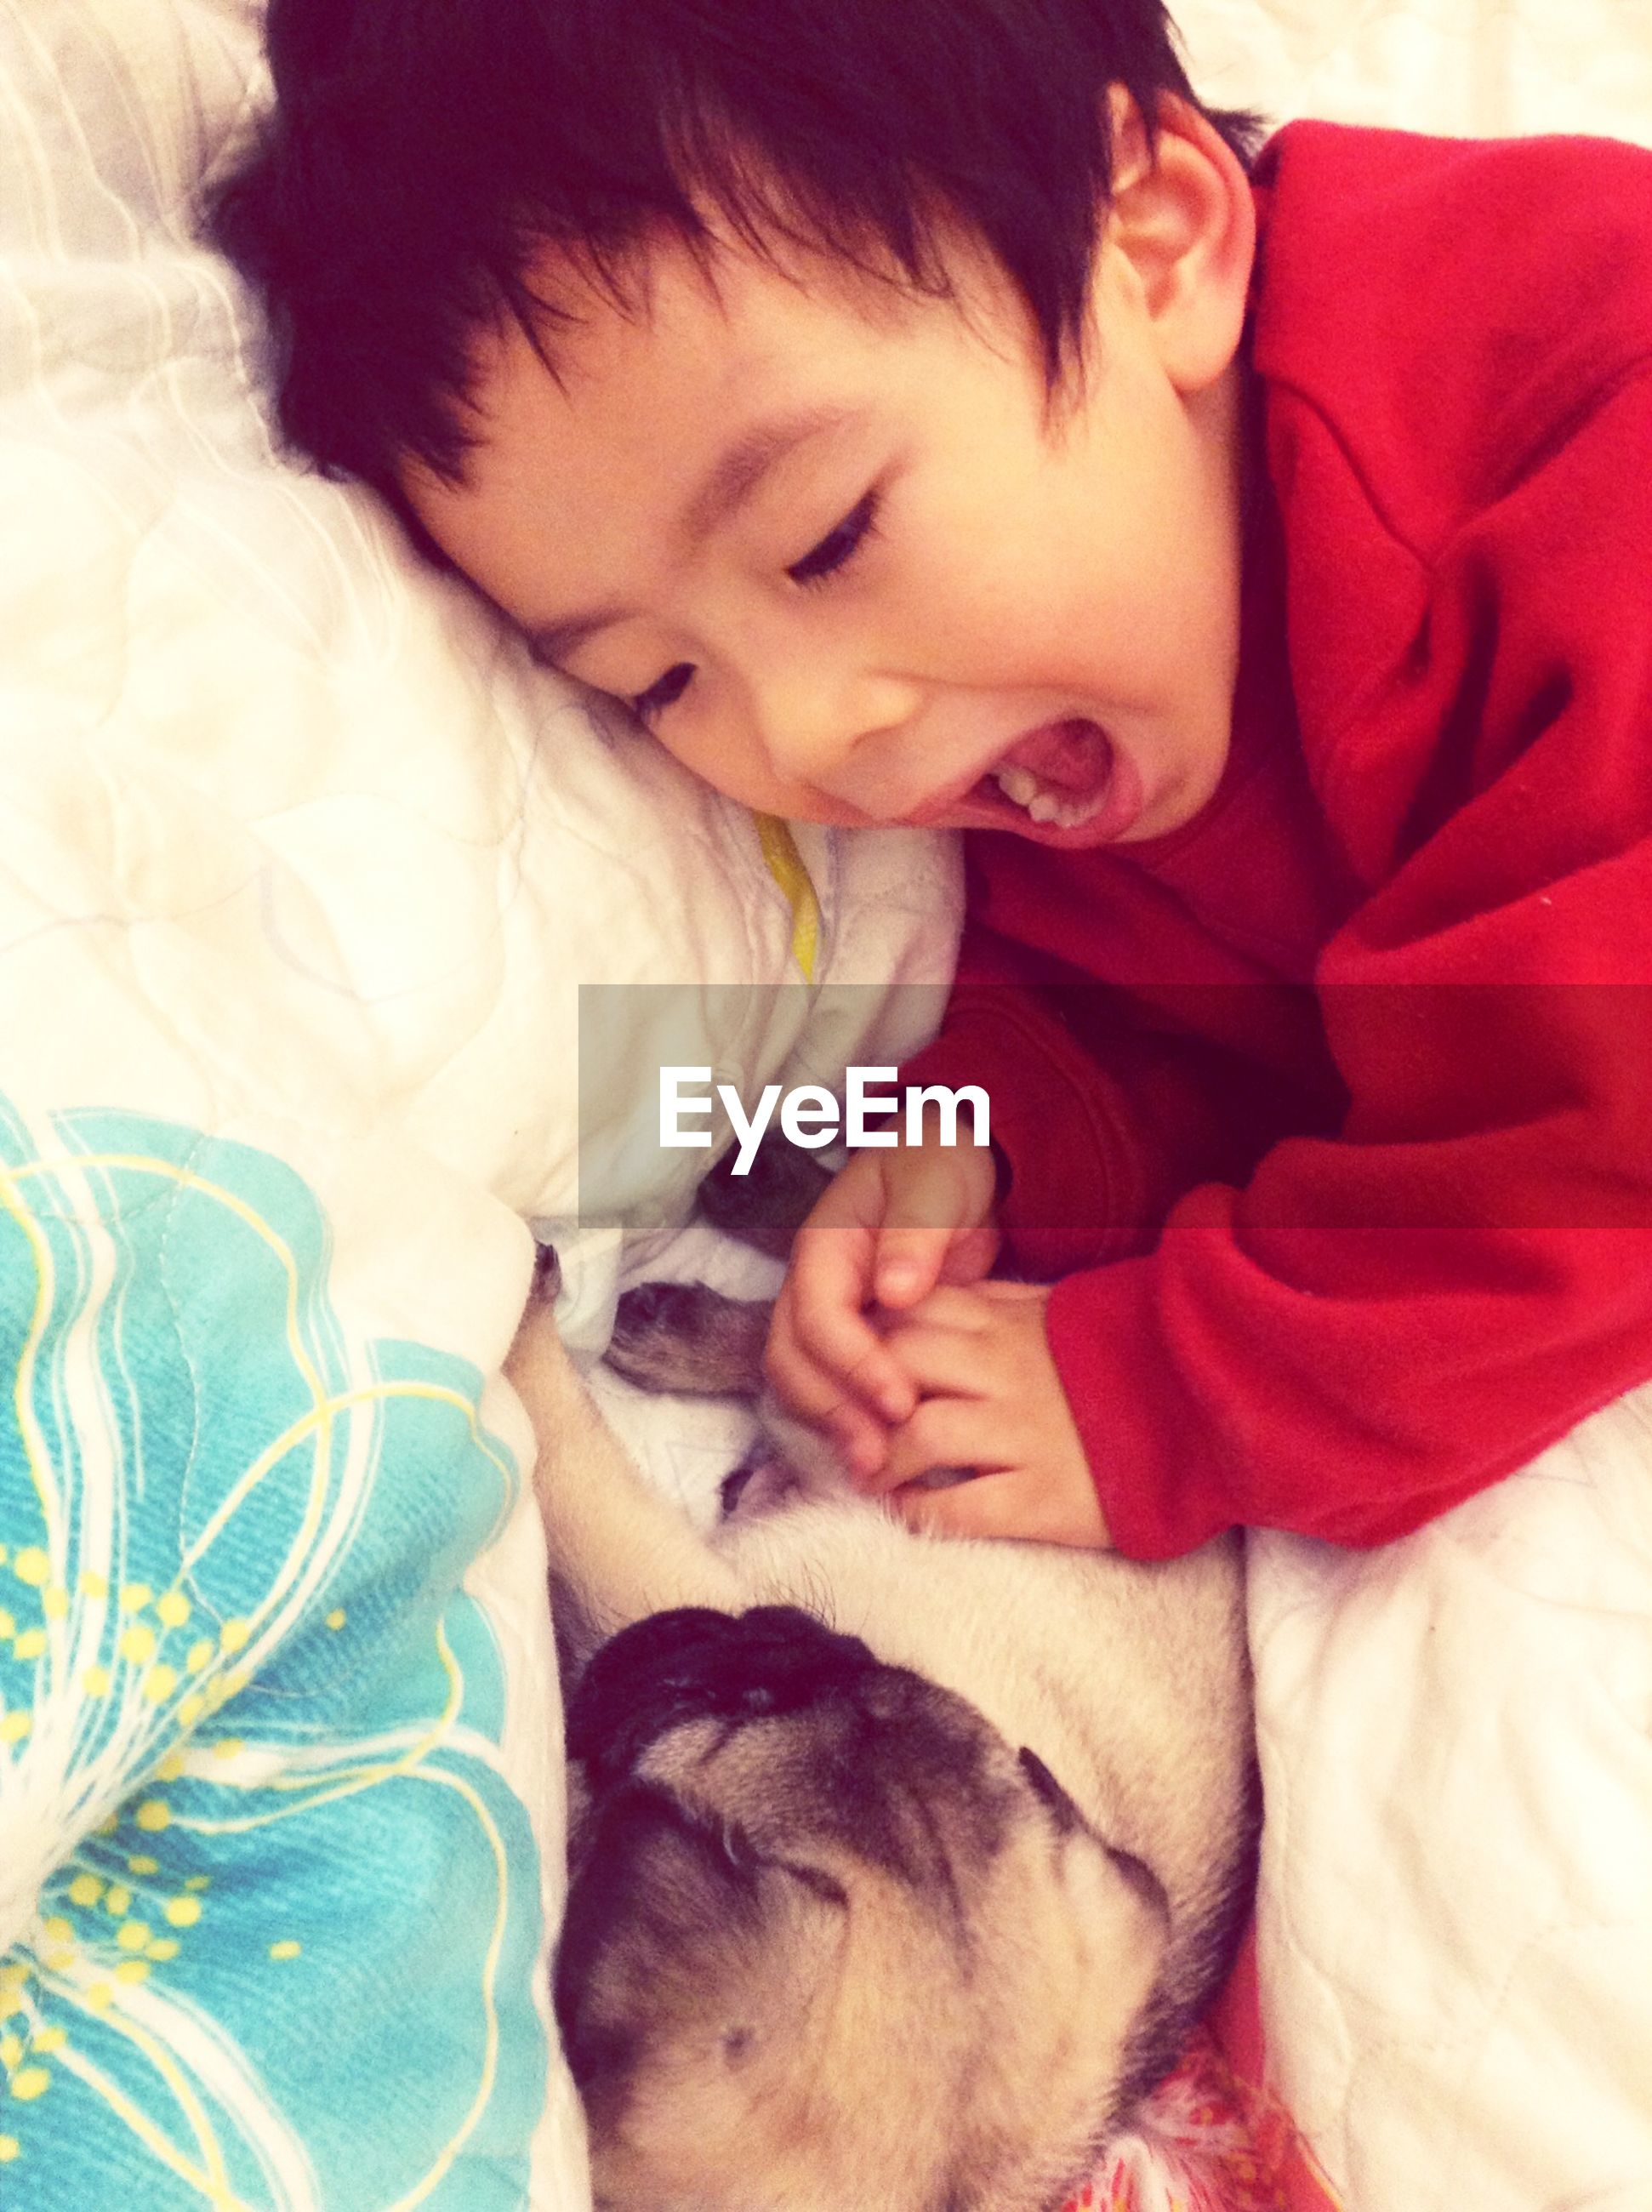 indoors, childhood, bed, sleeping, innocence, cute, pets, relaxation, person, elementary age, lying down, domestic animals, toddler, home interior, eyes closed, baby, lifestyles, babyhood